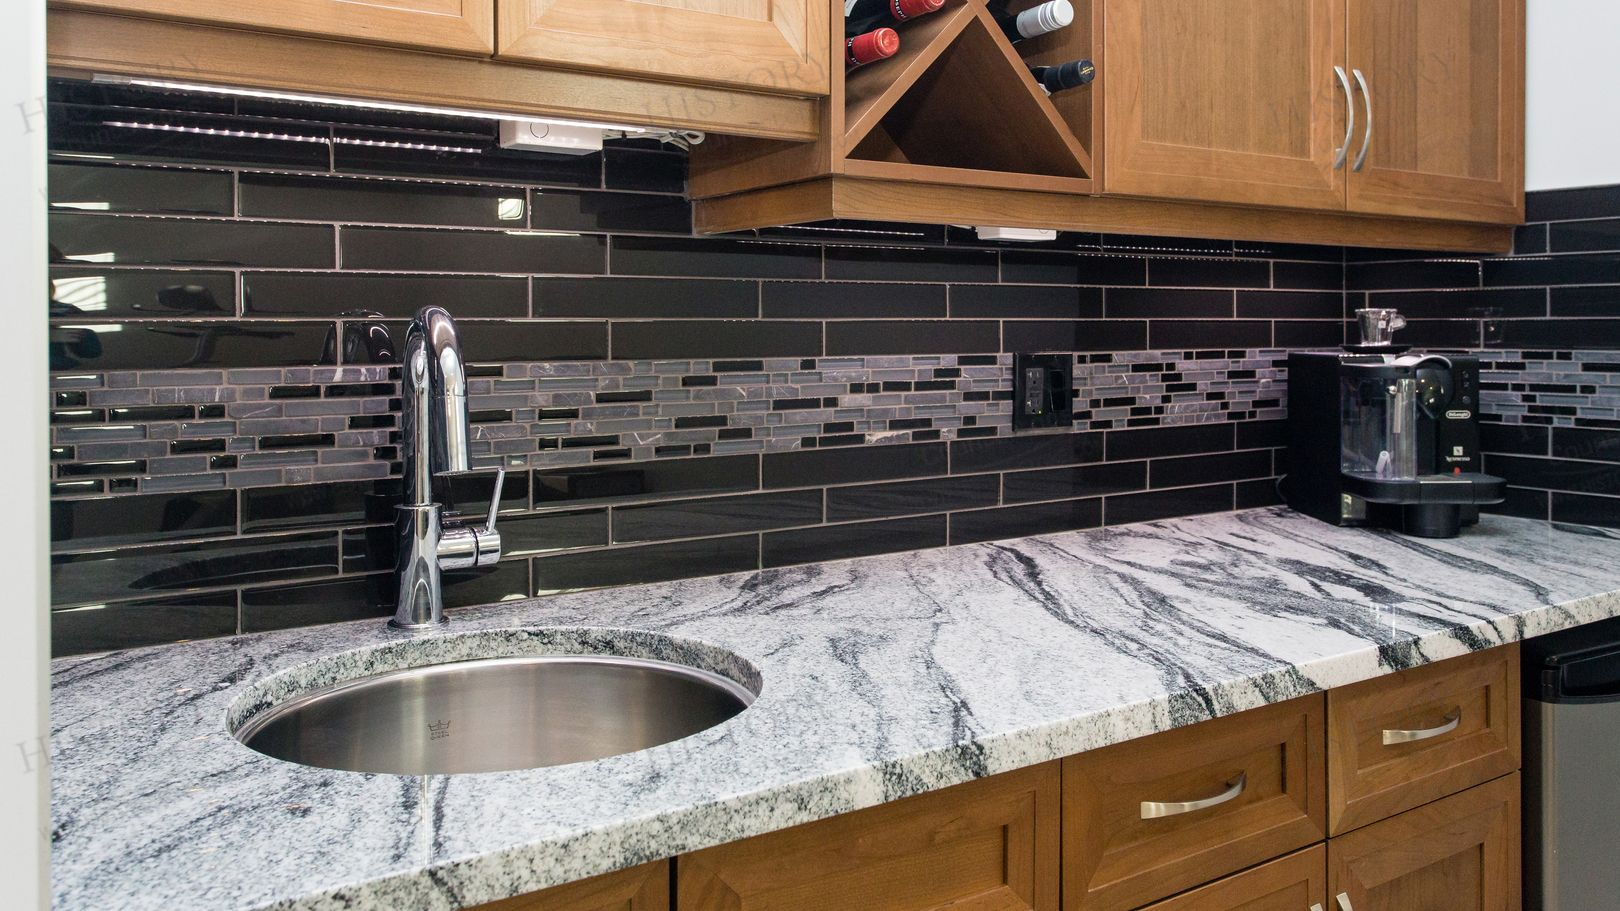 - India Viscont White Granite Countertops, I Like The Combination Of The  Granite And The Backsplash Tile For The Laundry Room. White Granite  Countertops, White Granite Colors, White Granite